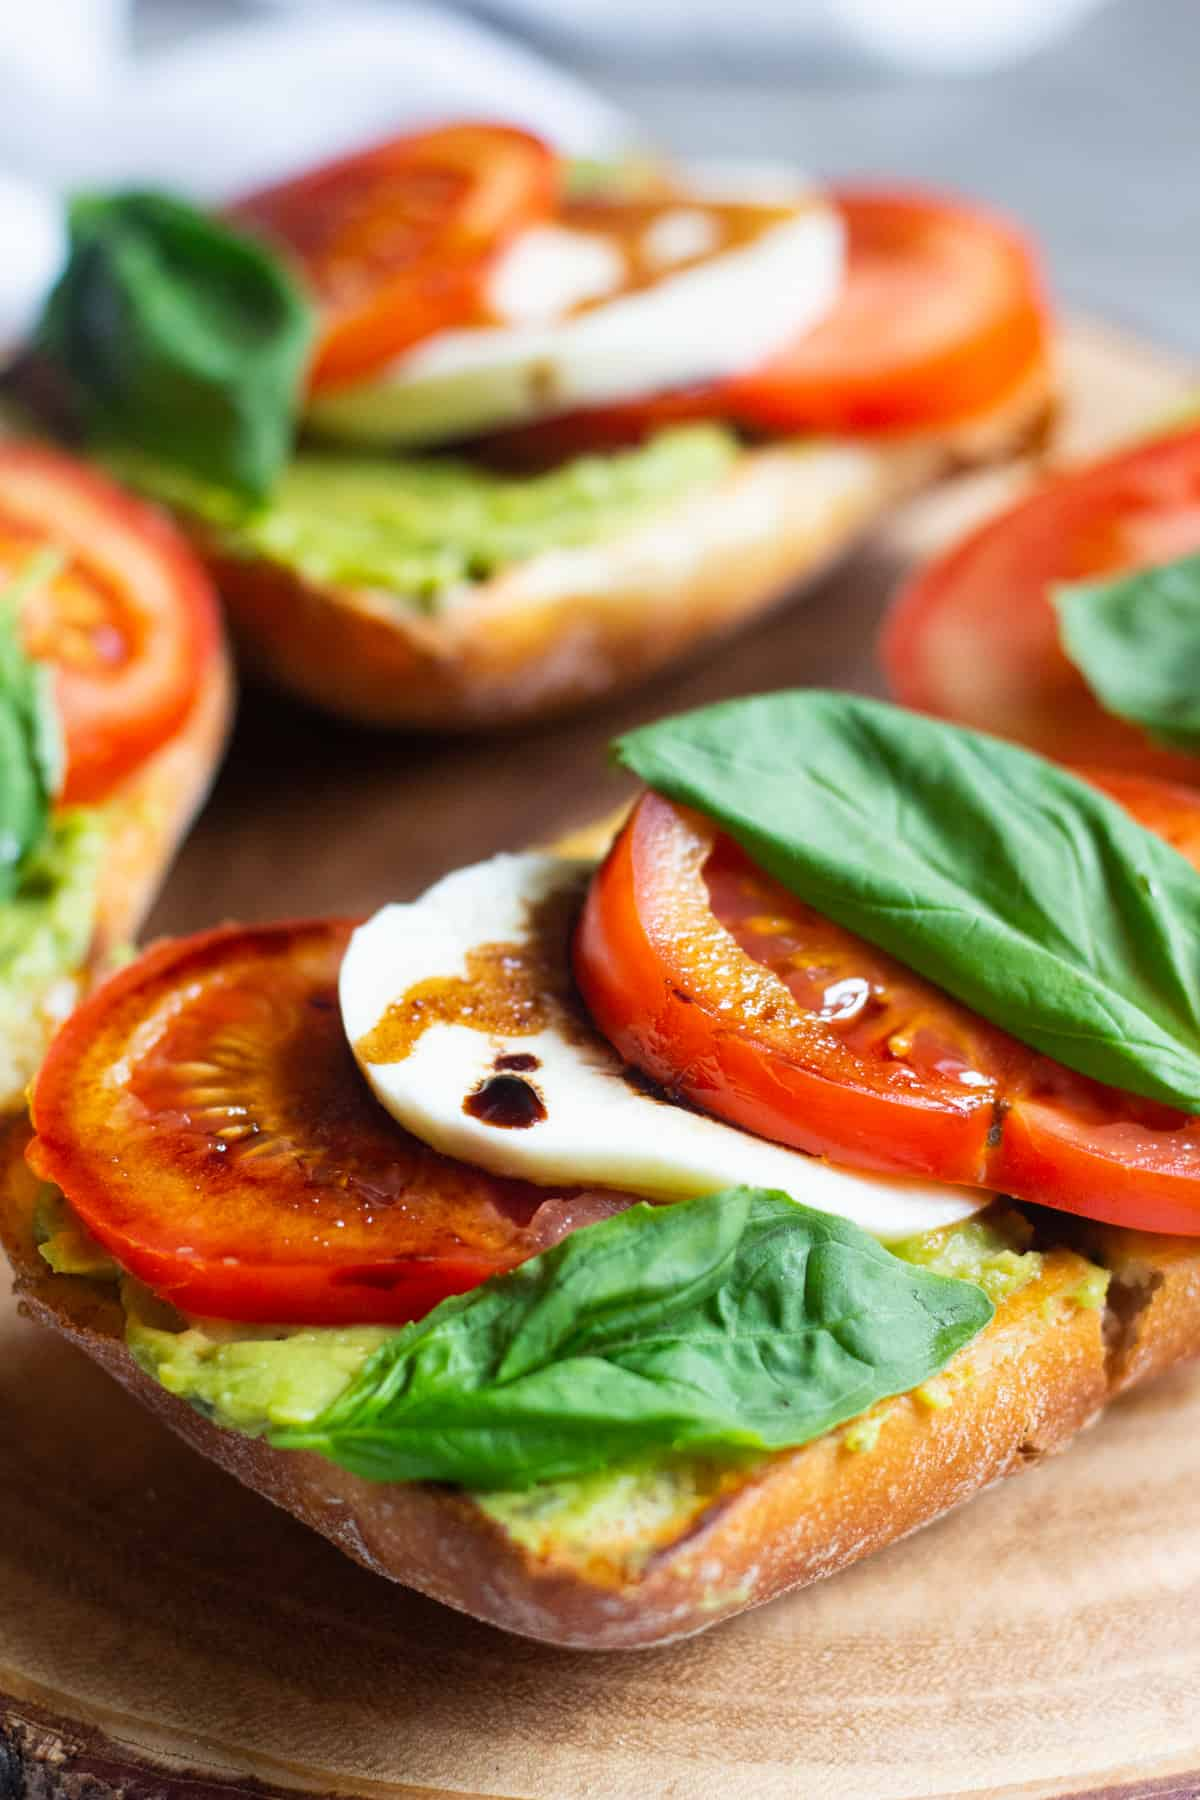 Italian bread with avocados, tomatoes and mozzarella. Topped with balsamic reduction and basil.